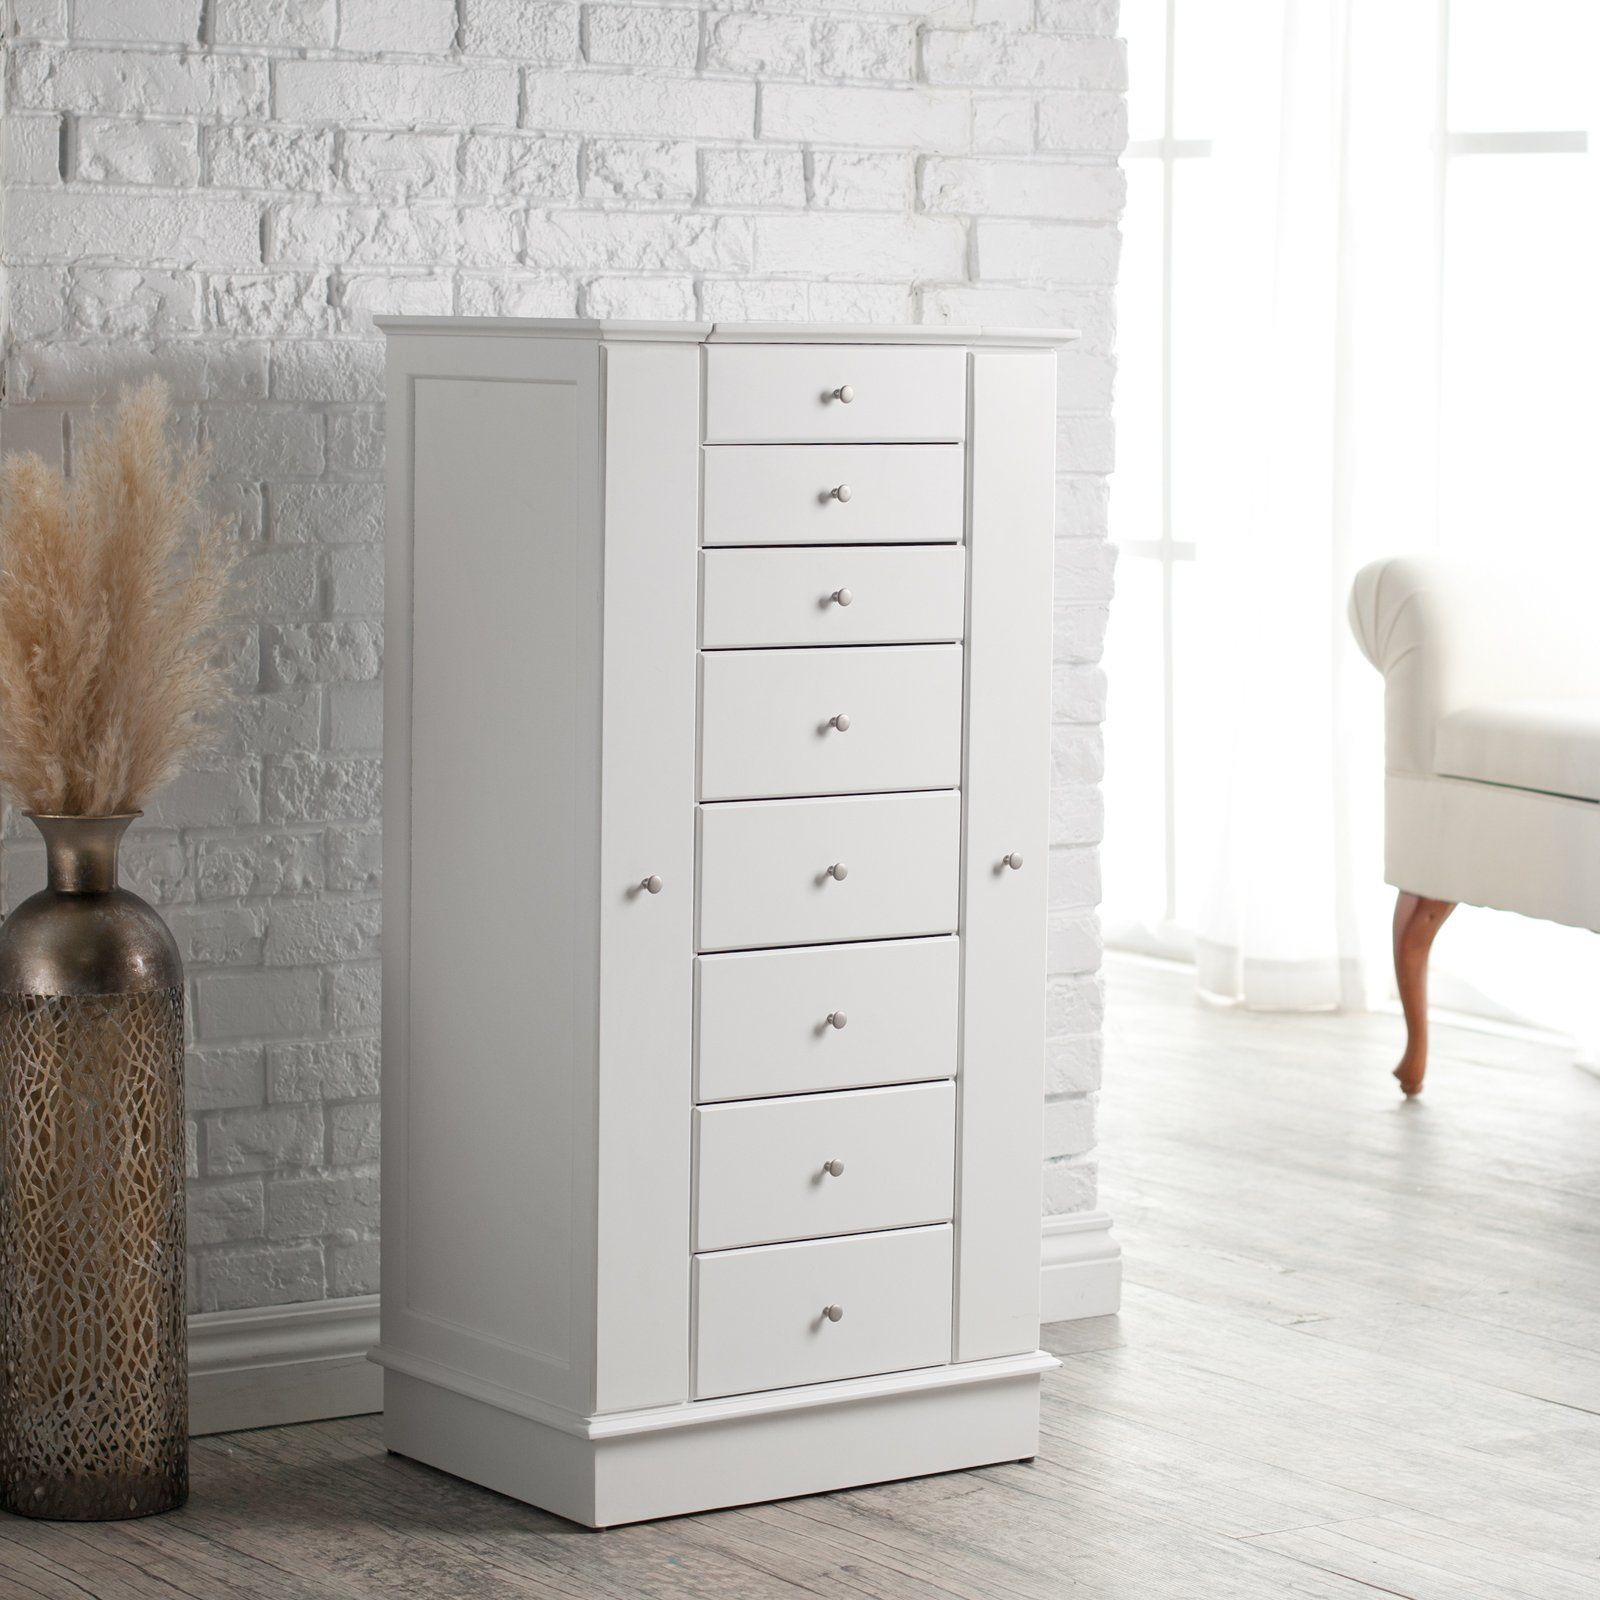 Perfect Exquisite Jewelry Armoire With Quilted Pullout Storage   White $399.98